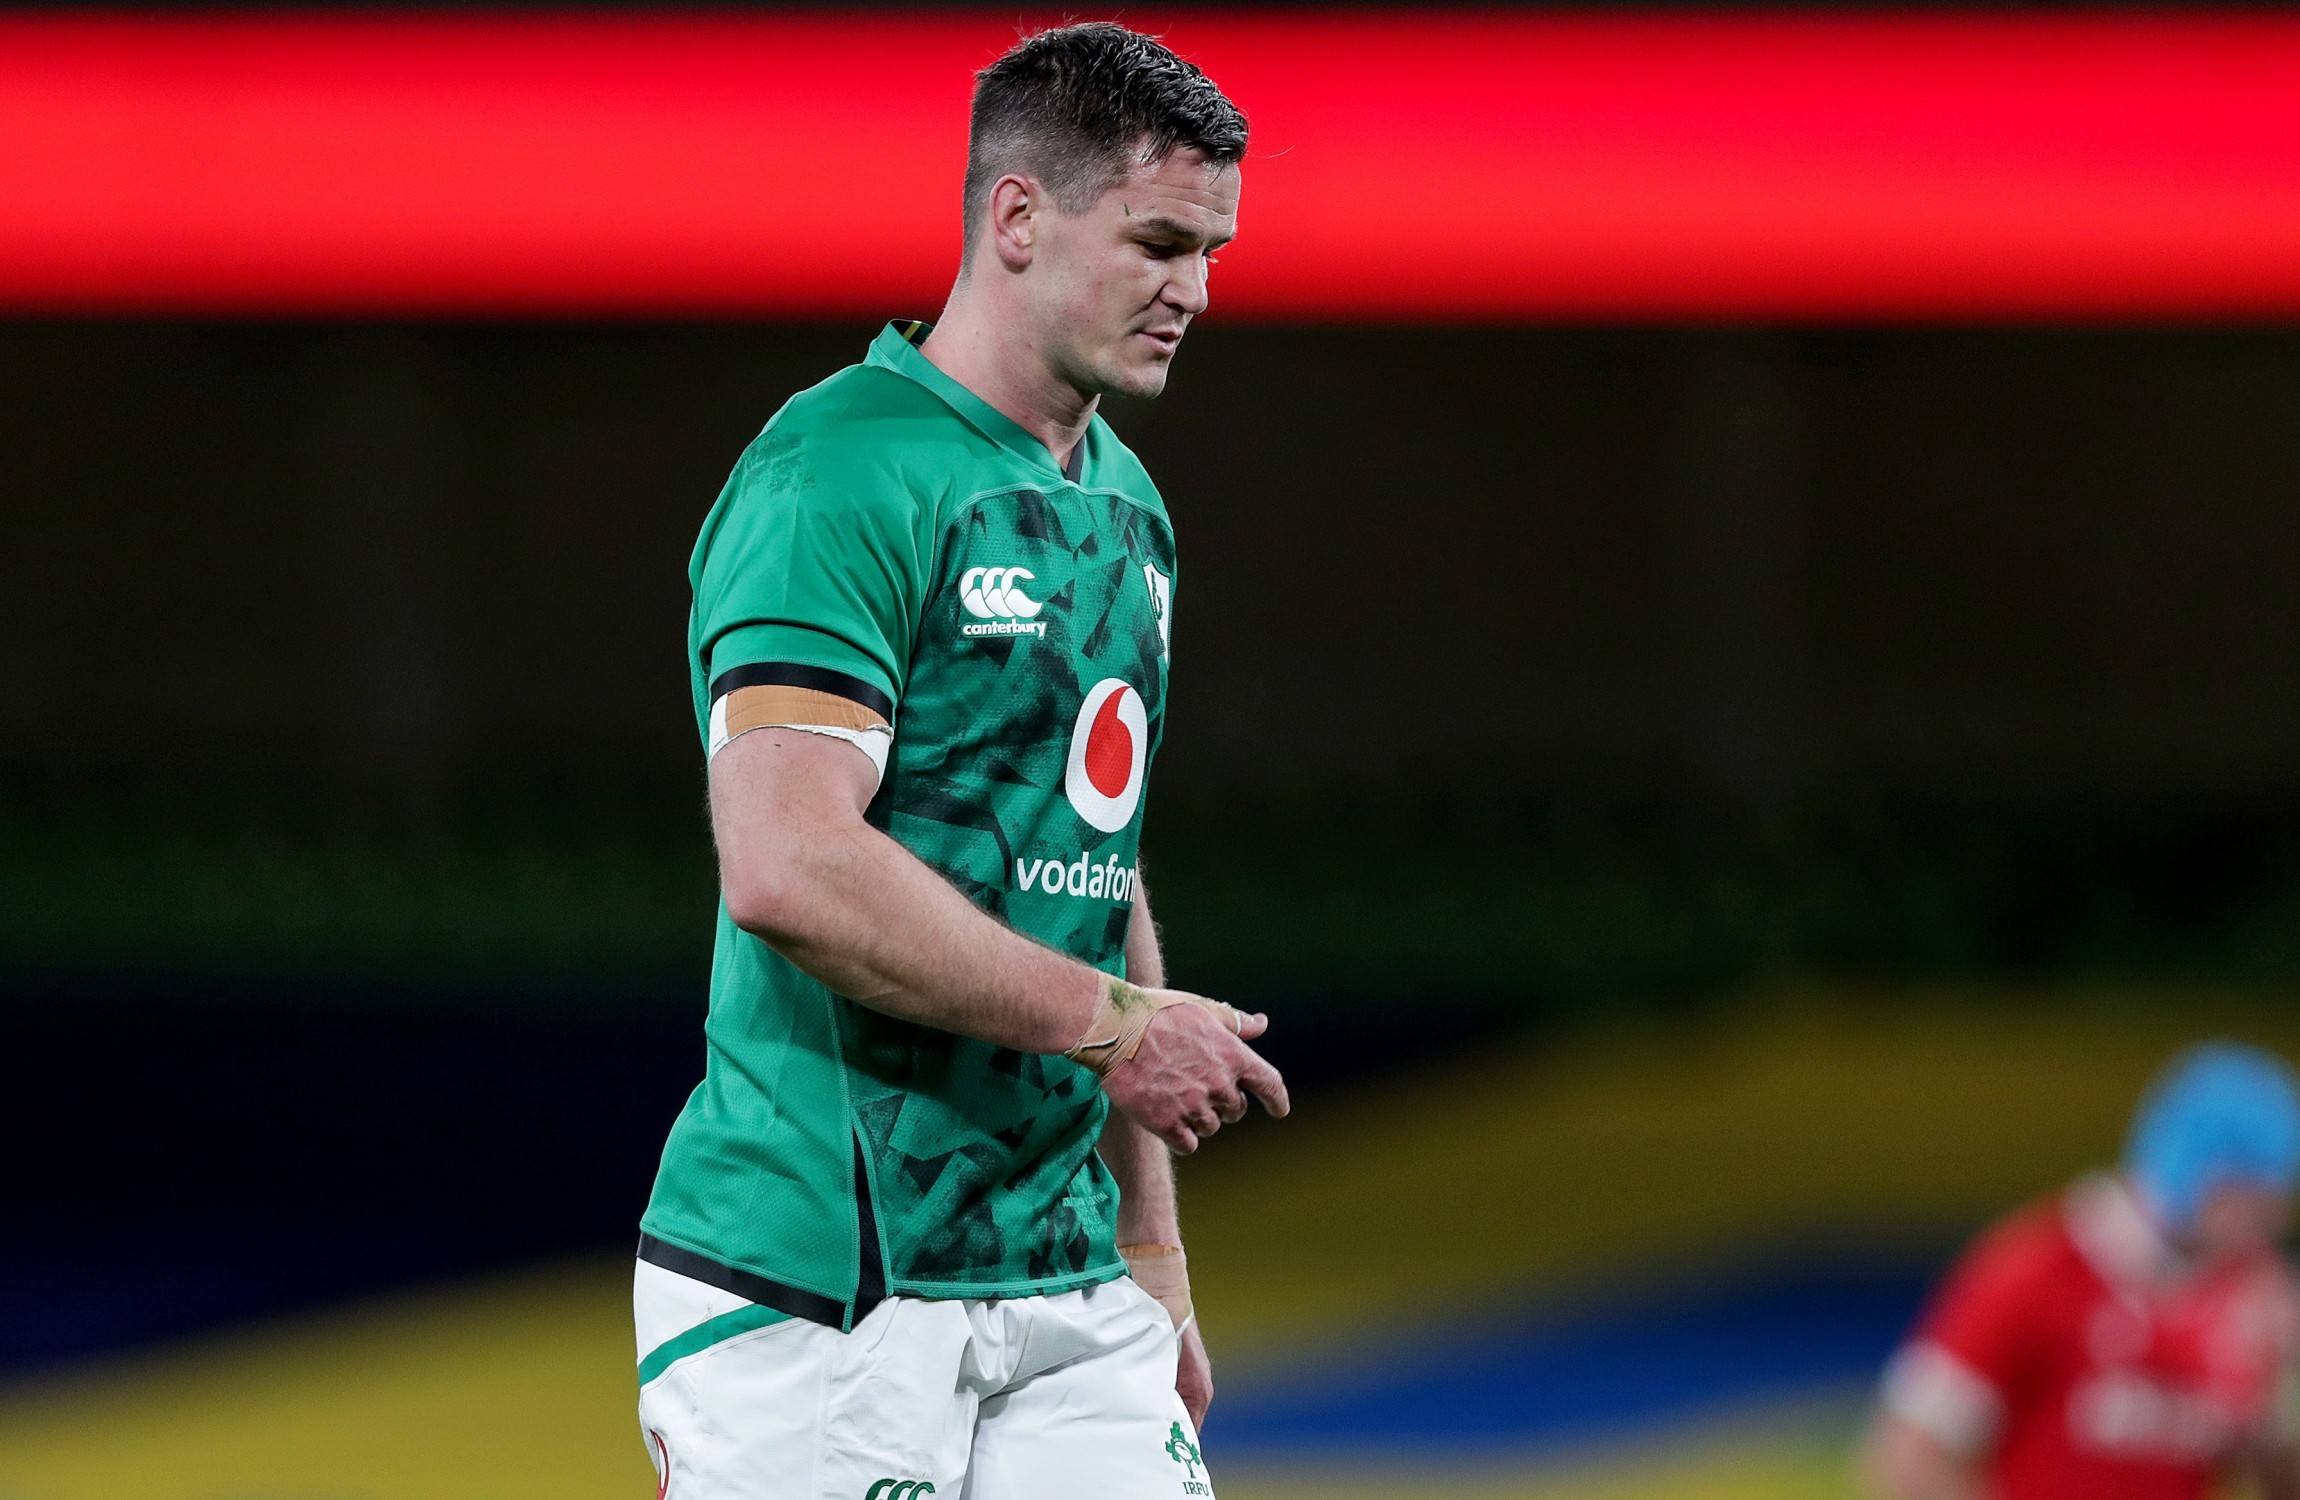 Johnny Sexton Thinks Media Have Been Harsh In Assessment Of Ireland